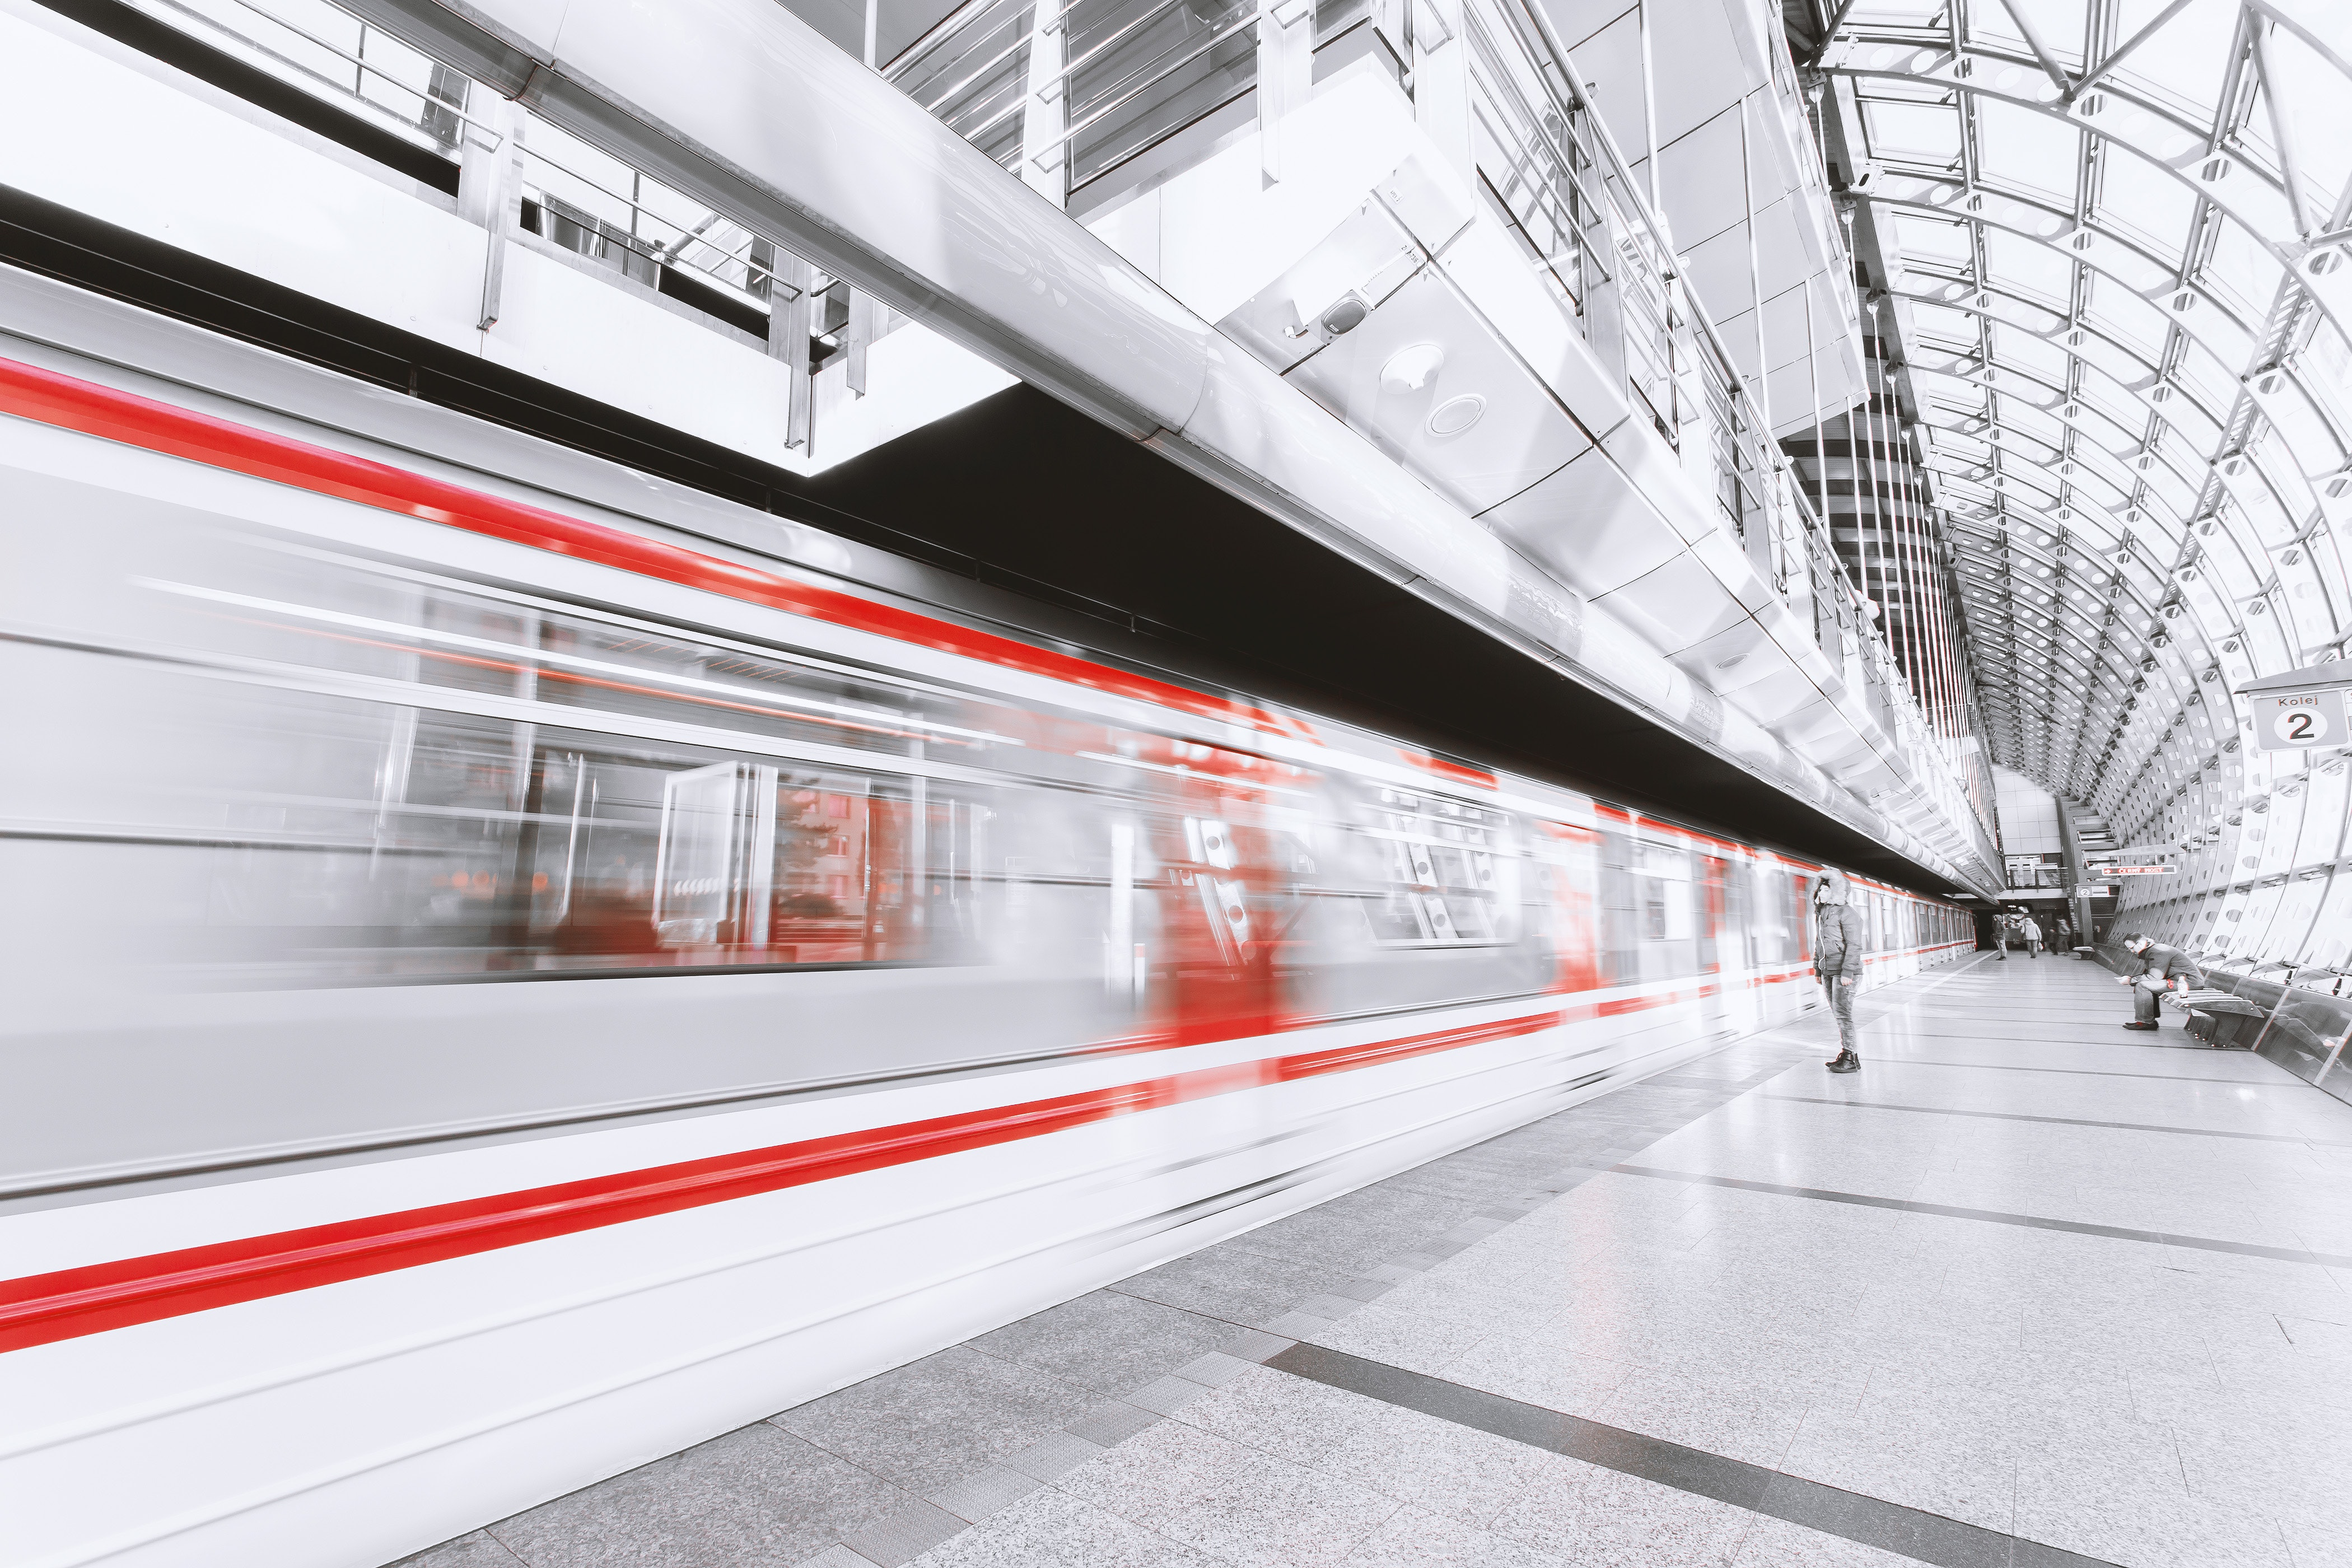 red and white blurred commuter